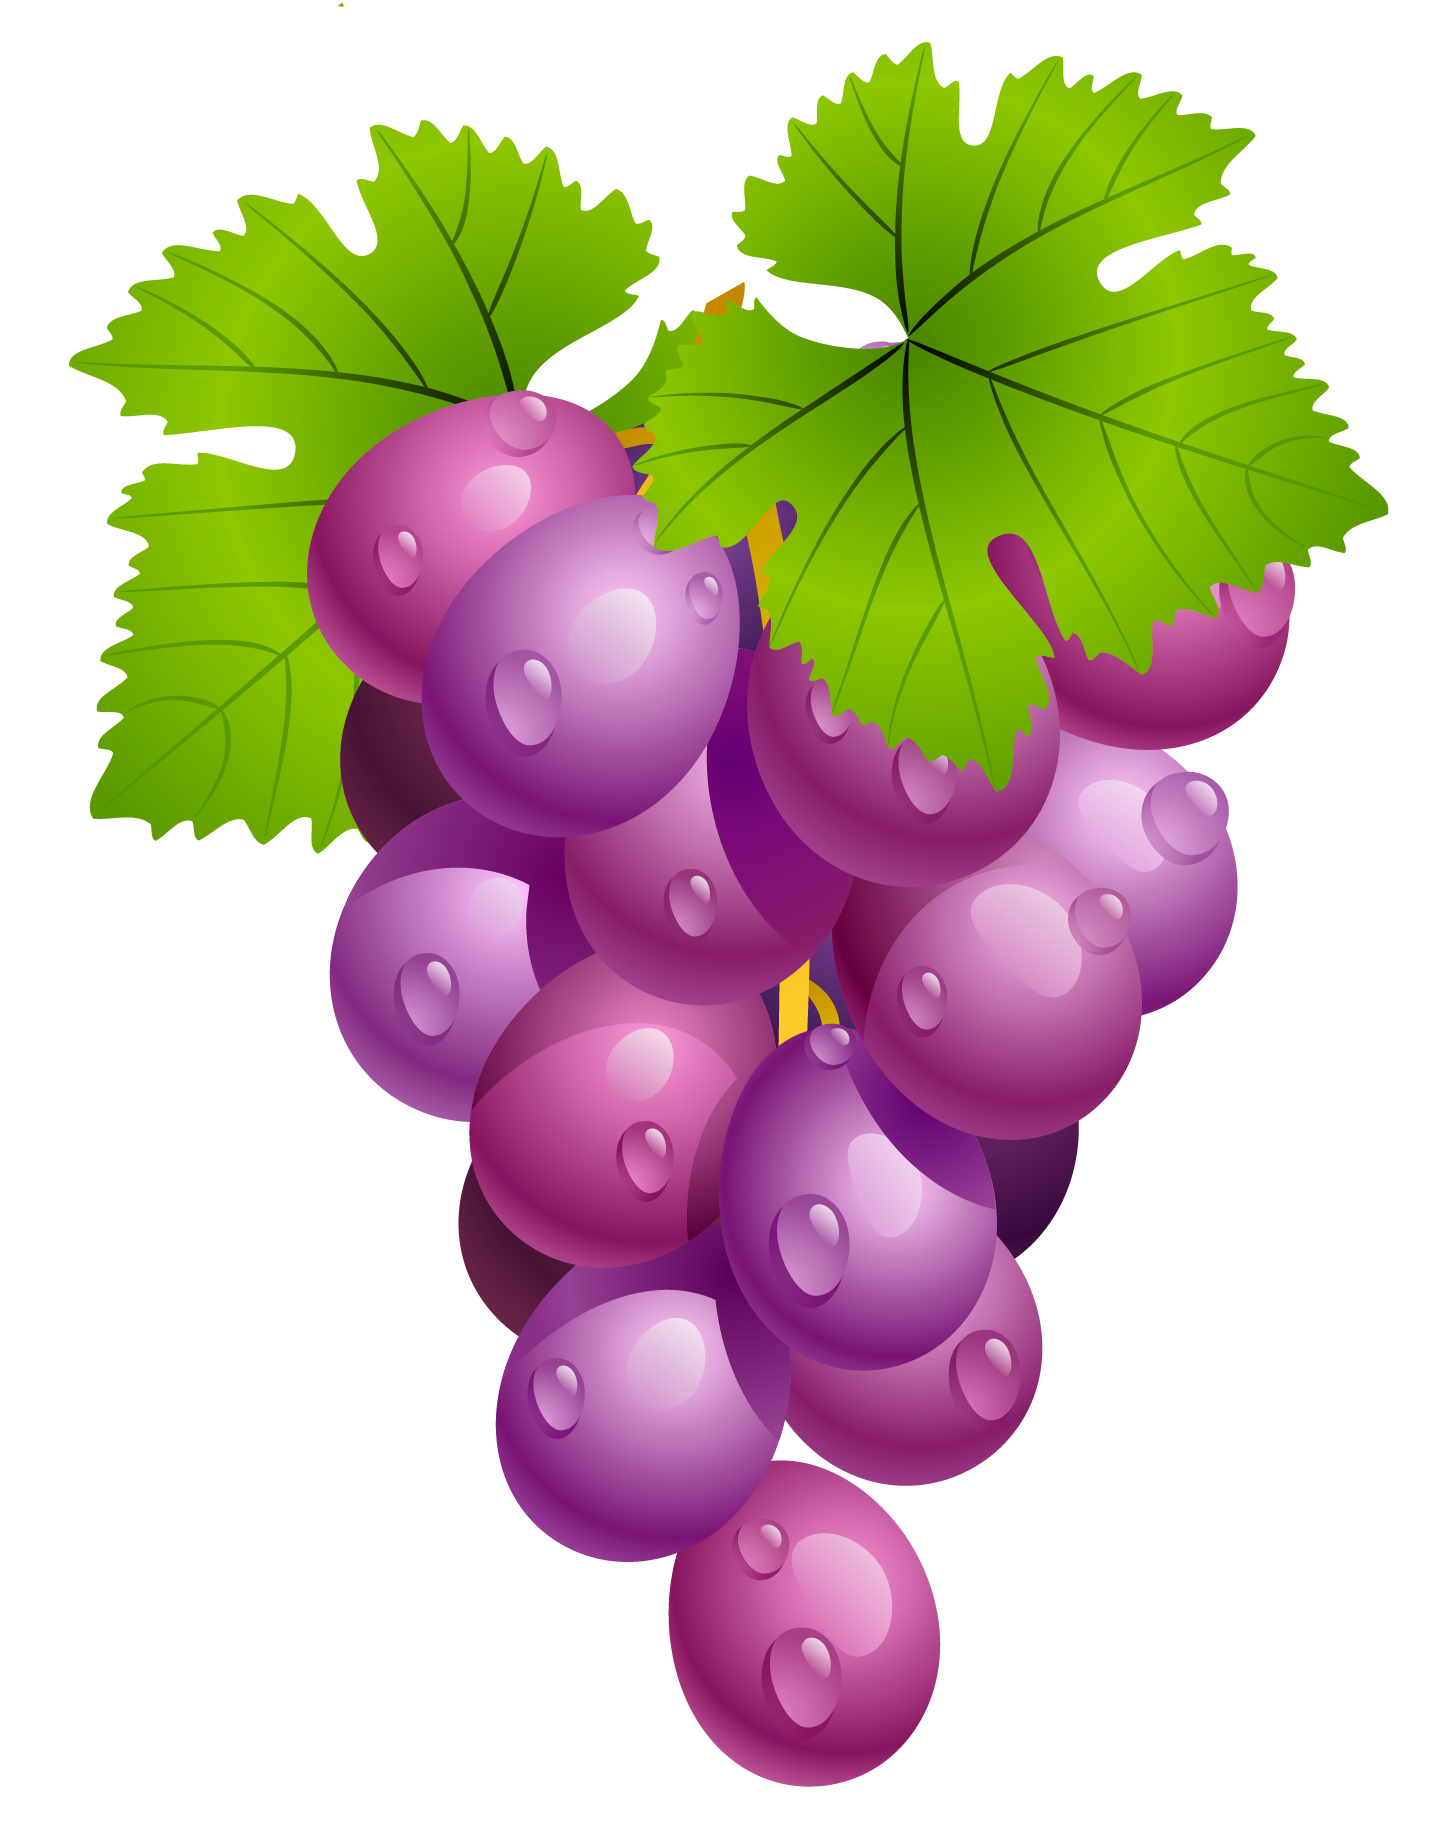 Grapevine vector ornament. Grapes with leaves png